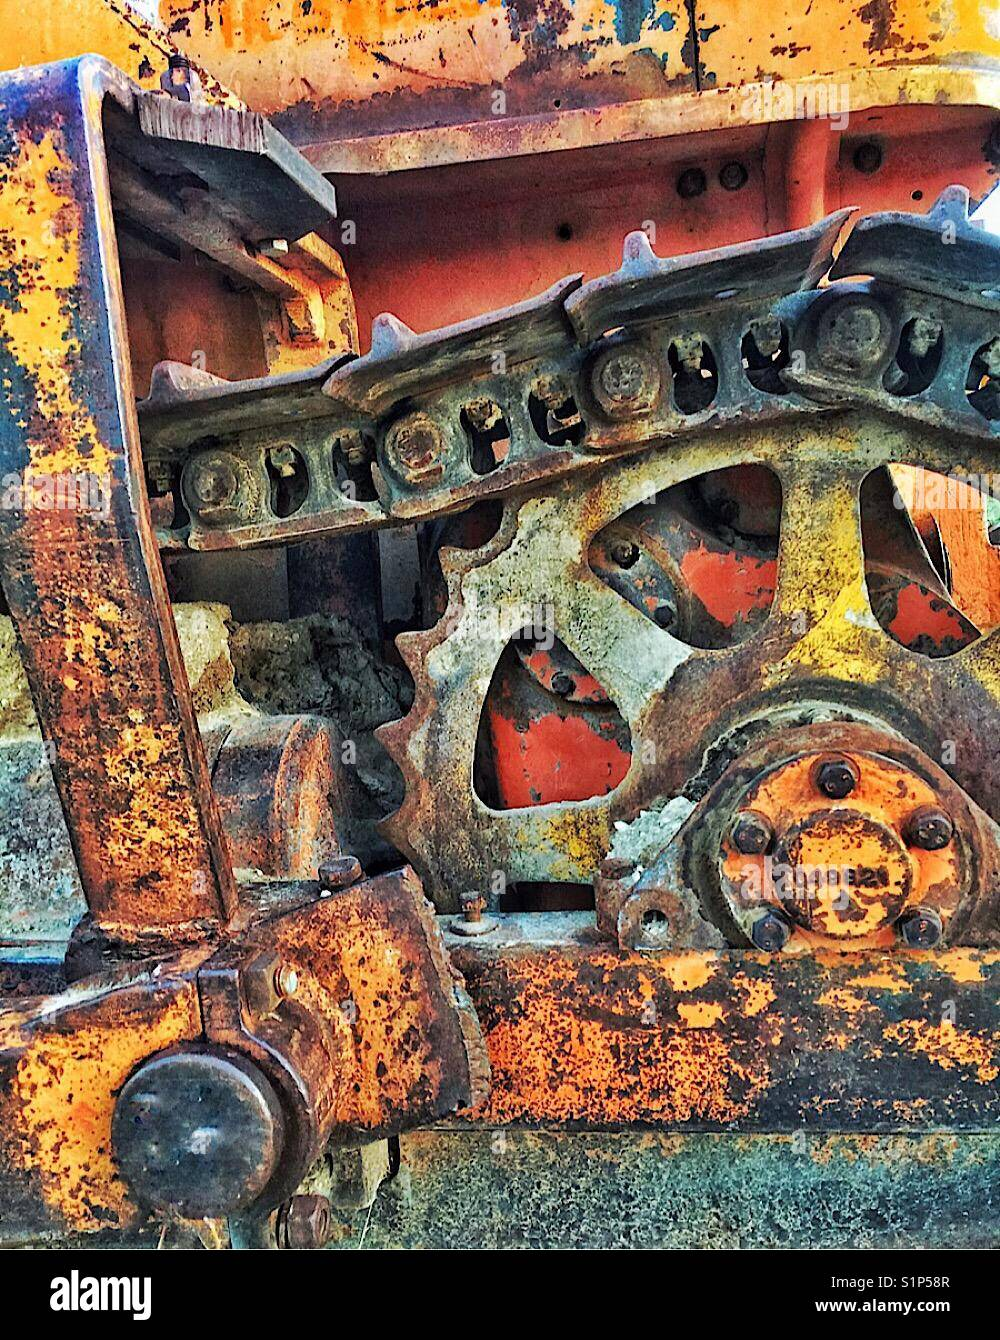 Rusty old machine detail - Stock Image